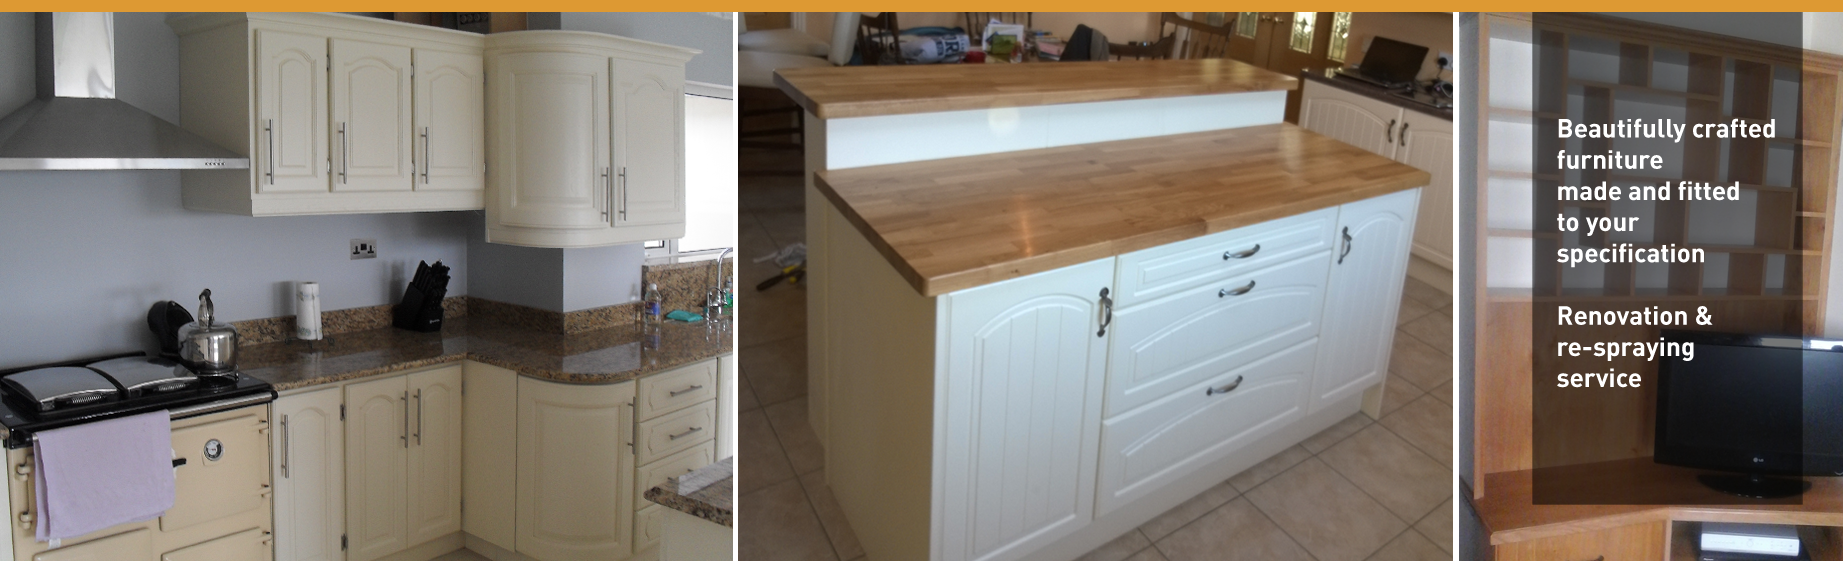 Fitted Furniture Kitchens Galway